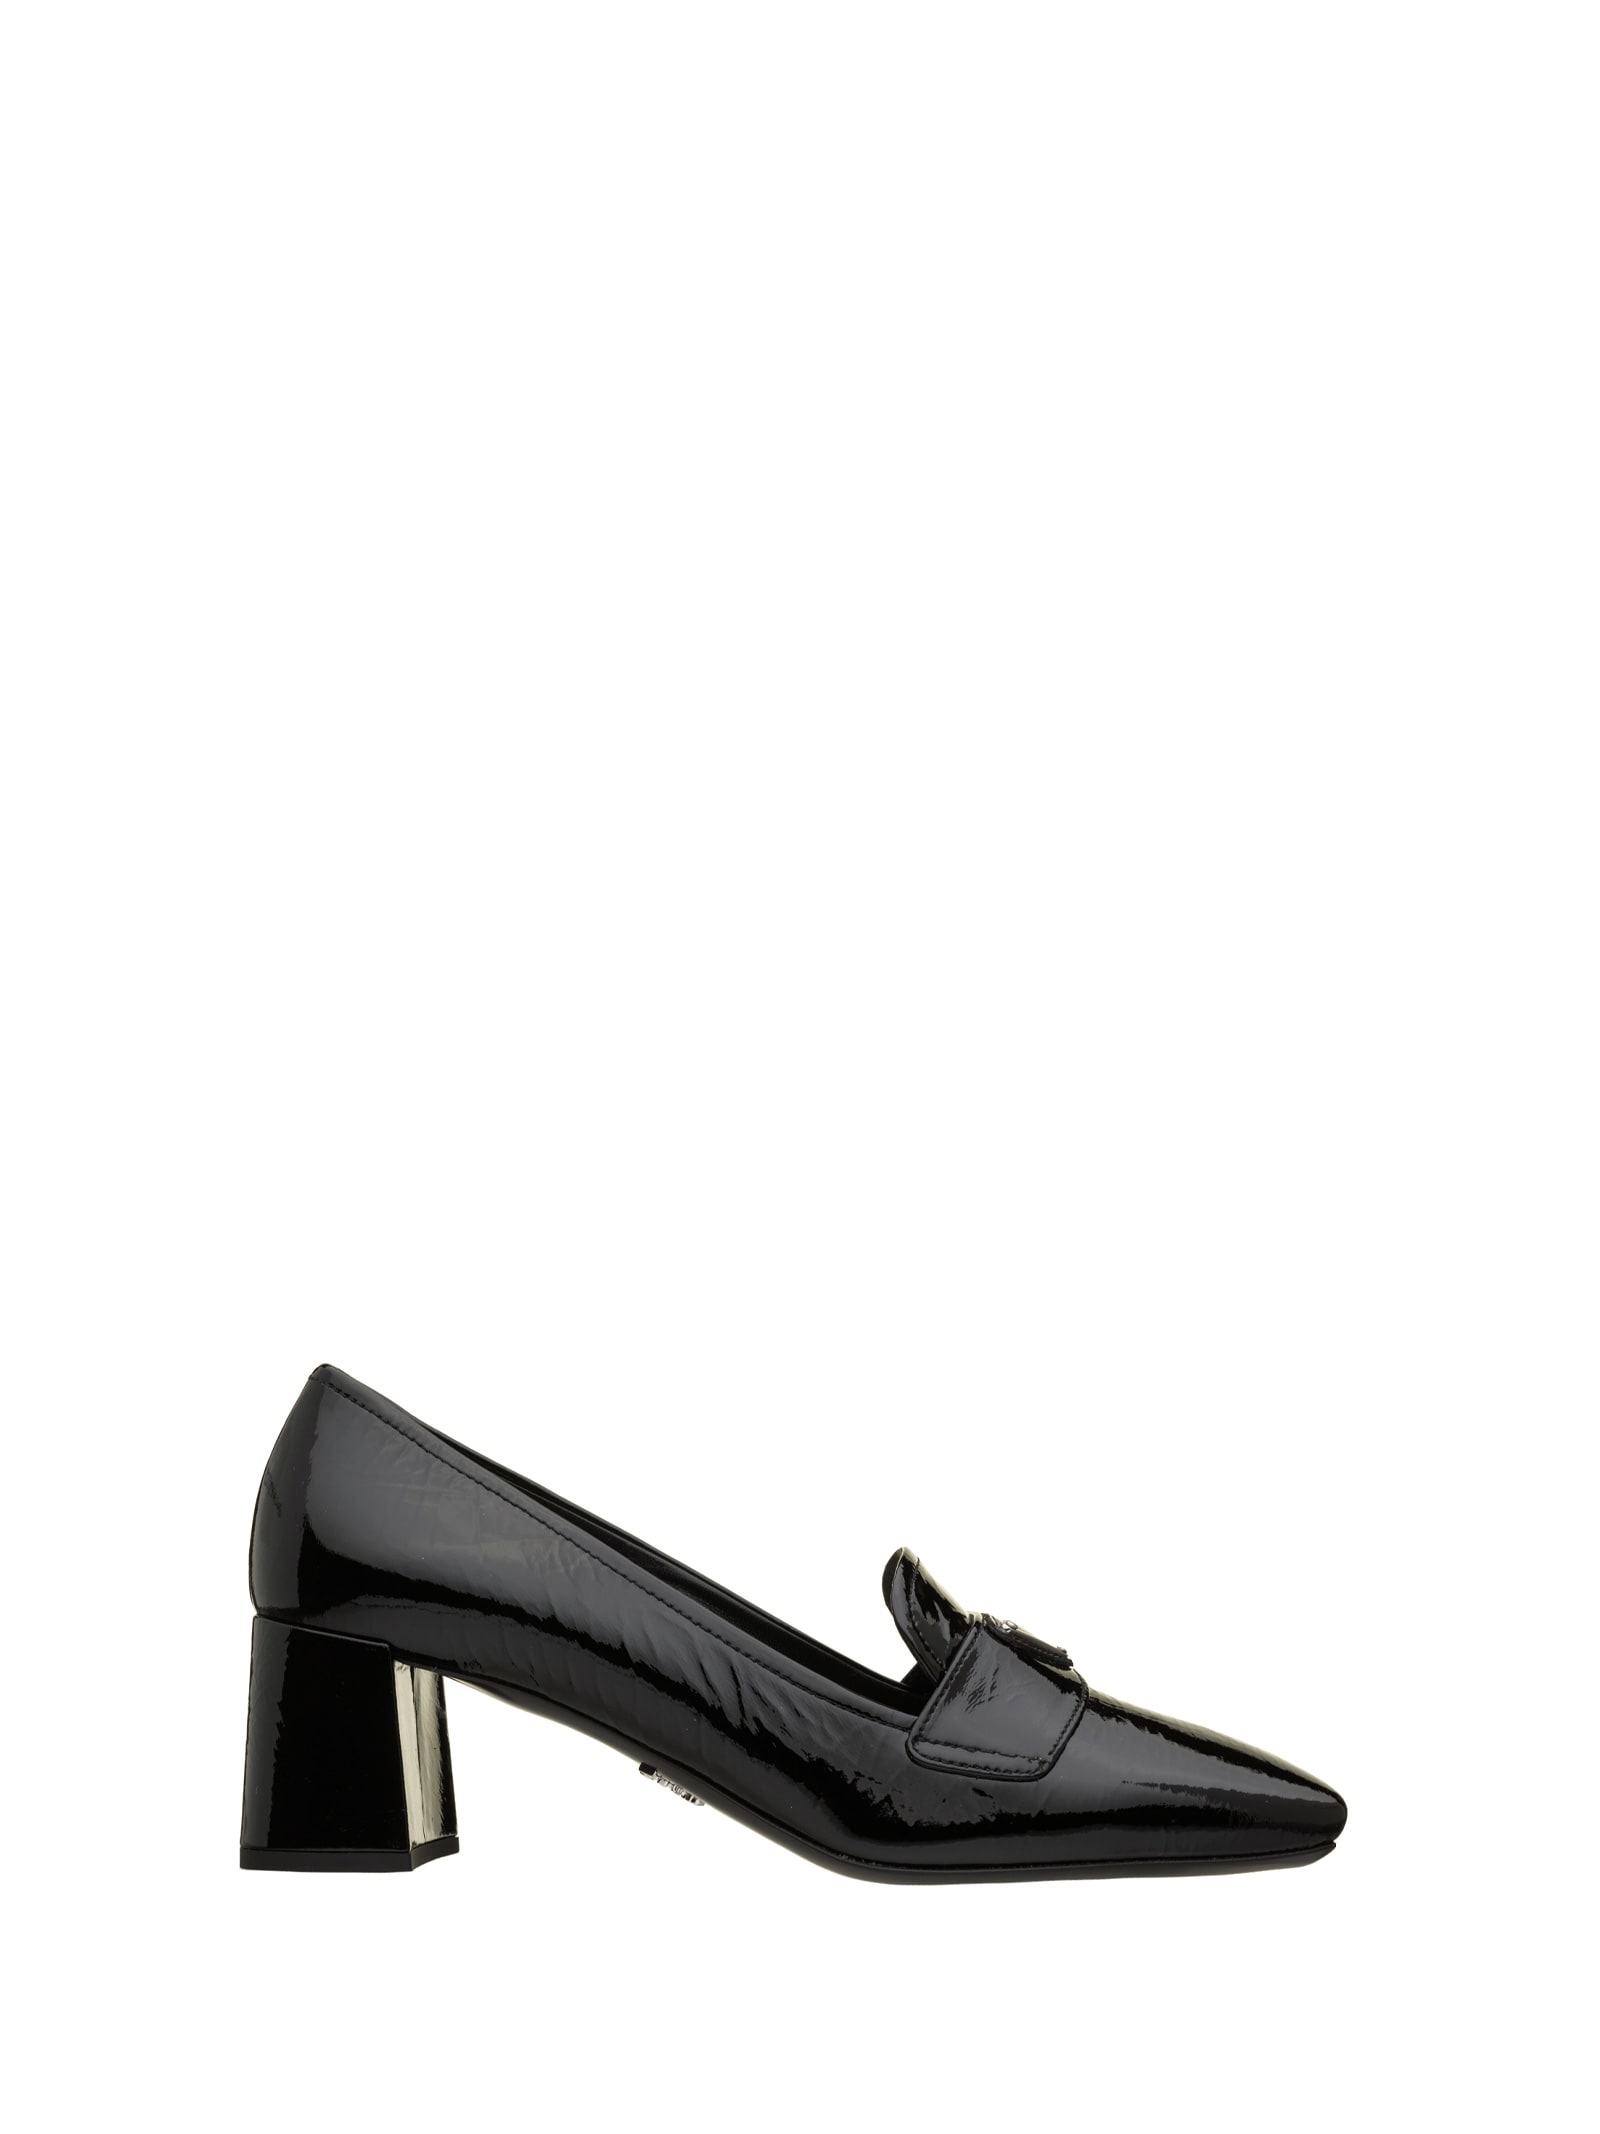 Prada Flat Shoes